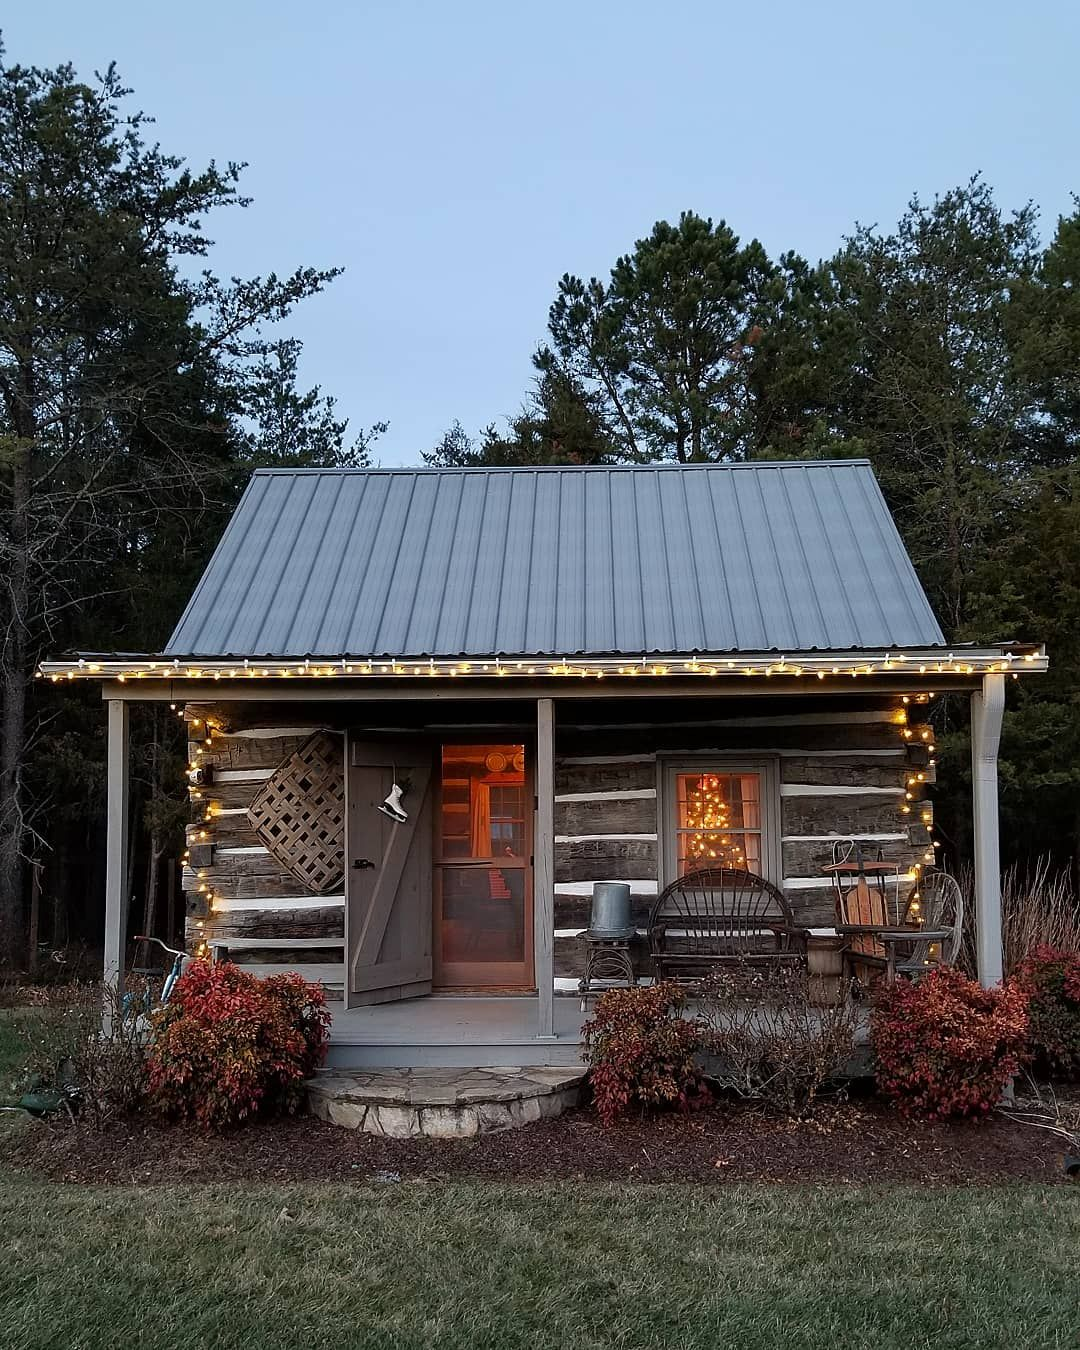 Penny happy days farm on instagram  chave  evening everyone   also the best rustic tiny house ideas pinterest cabin rh